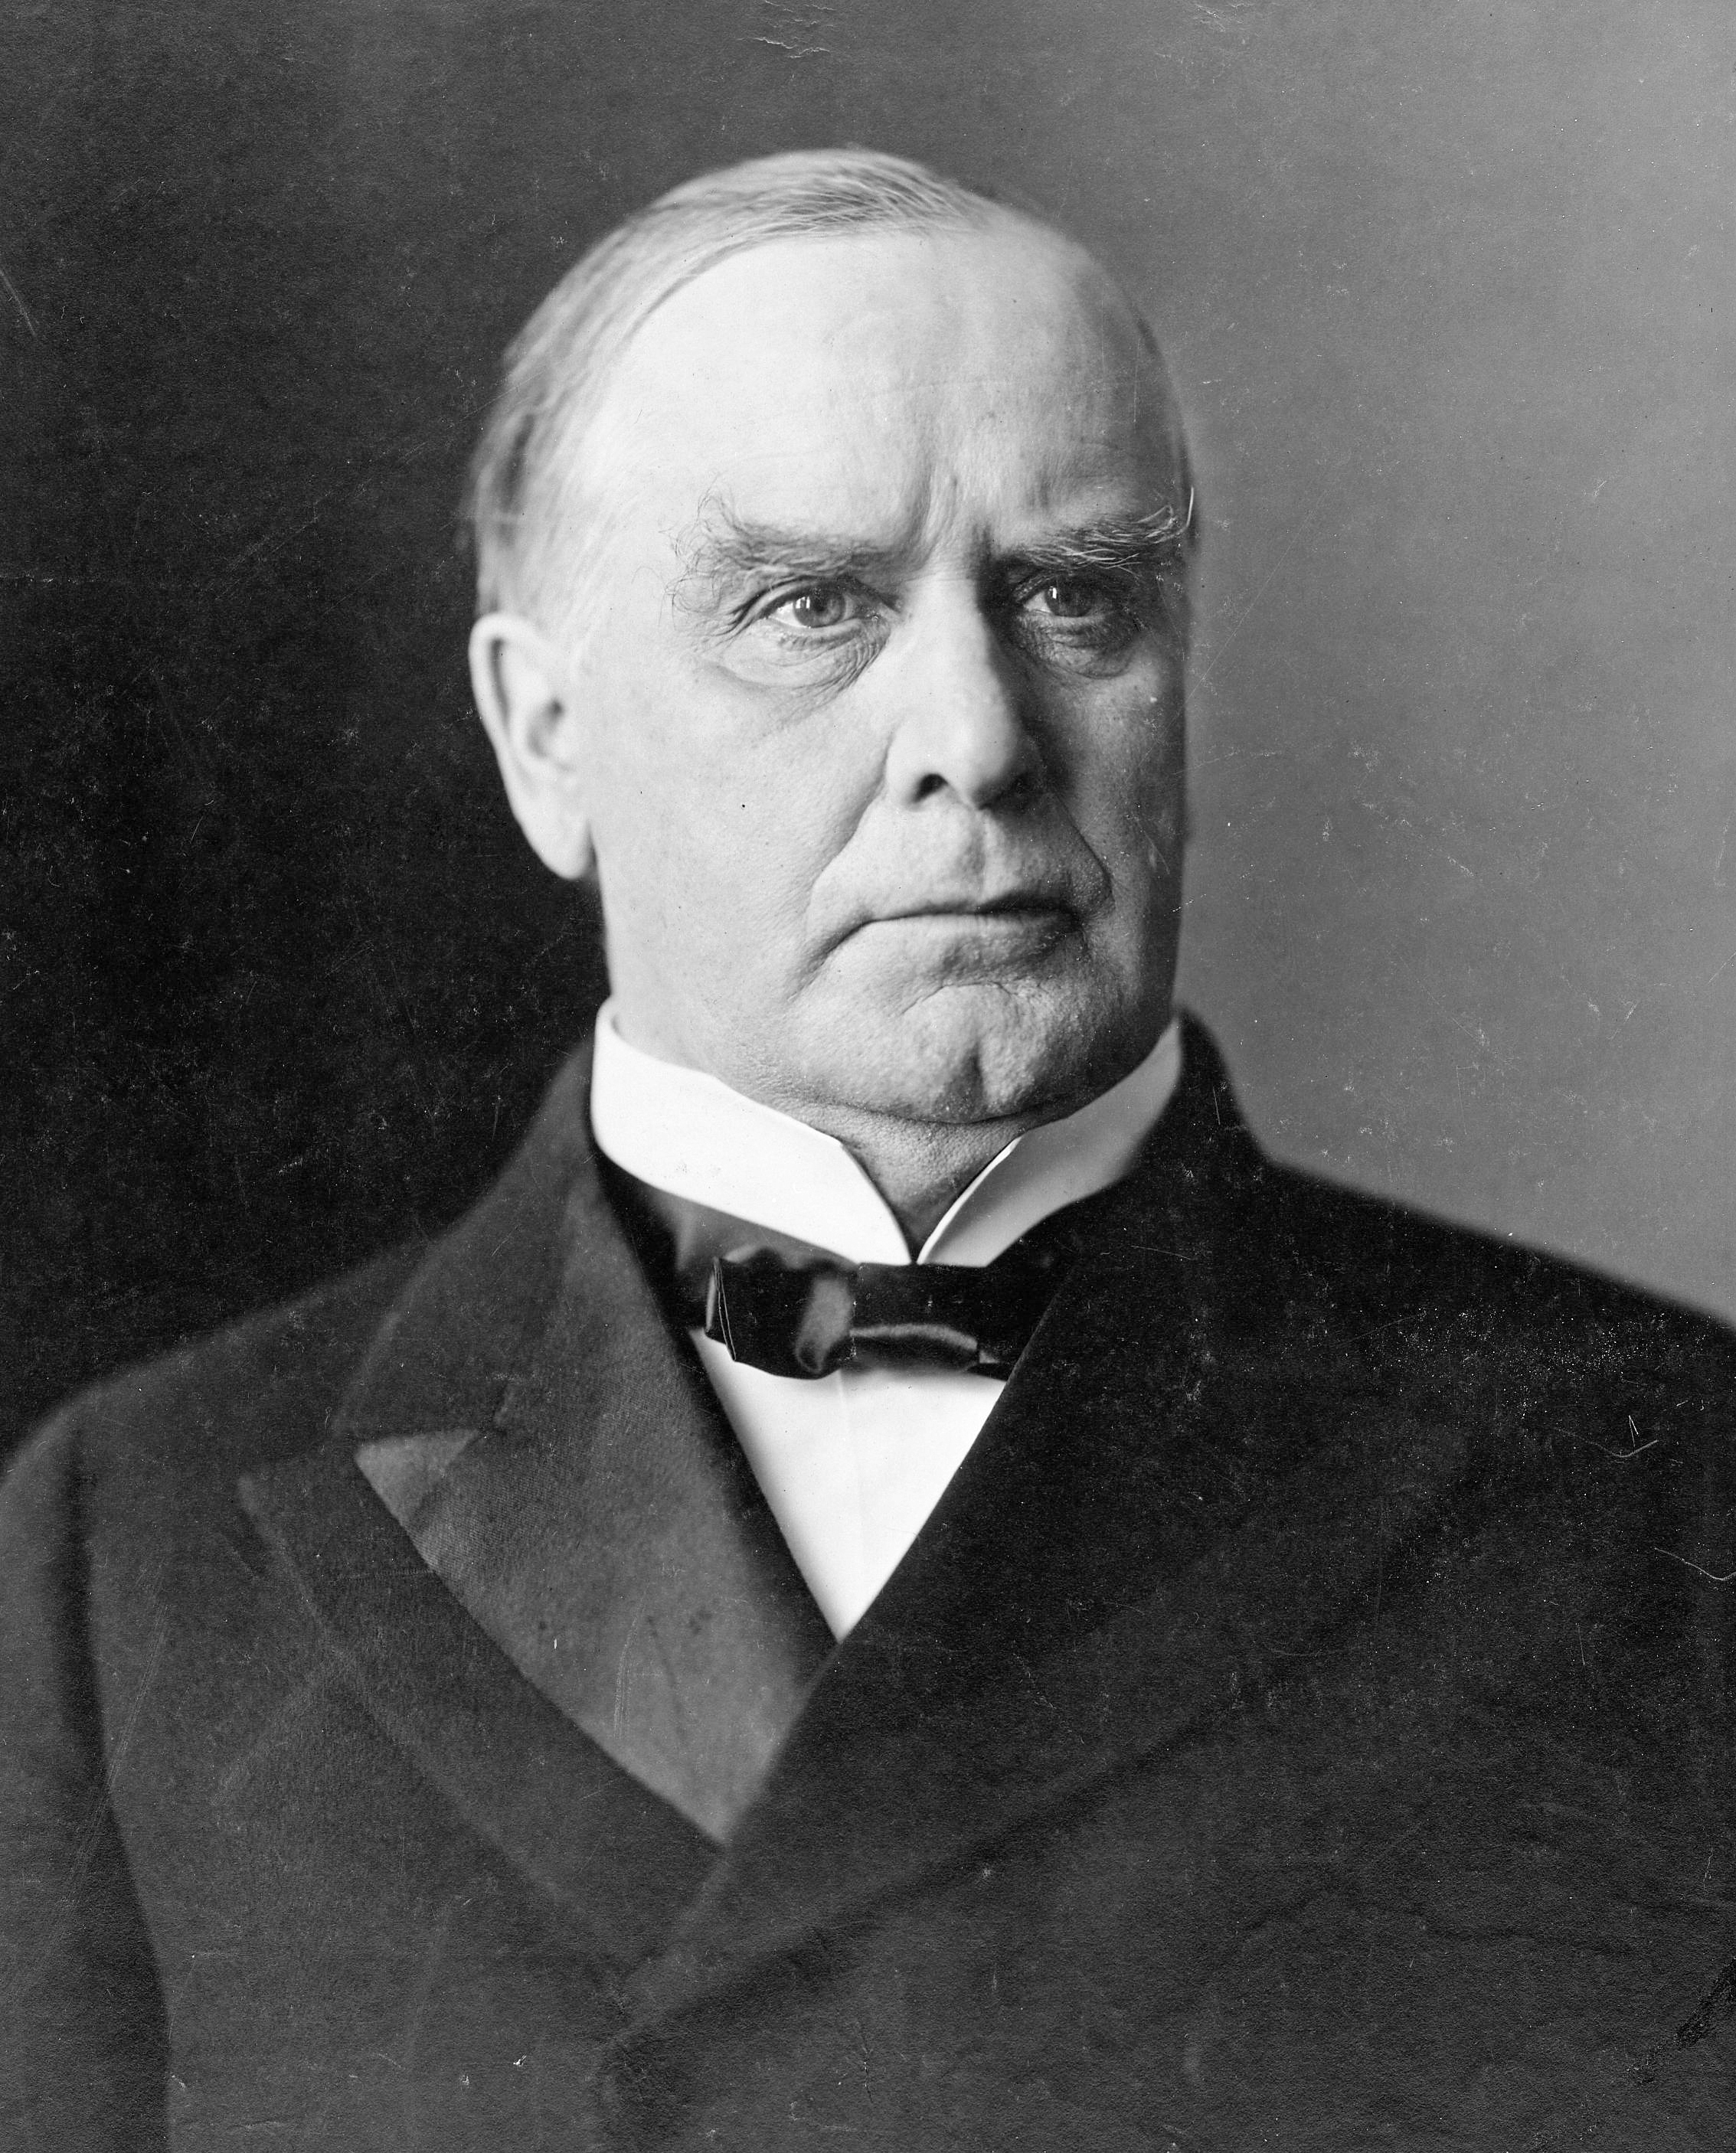 President William McKinley of those United States